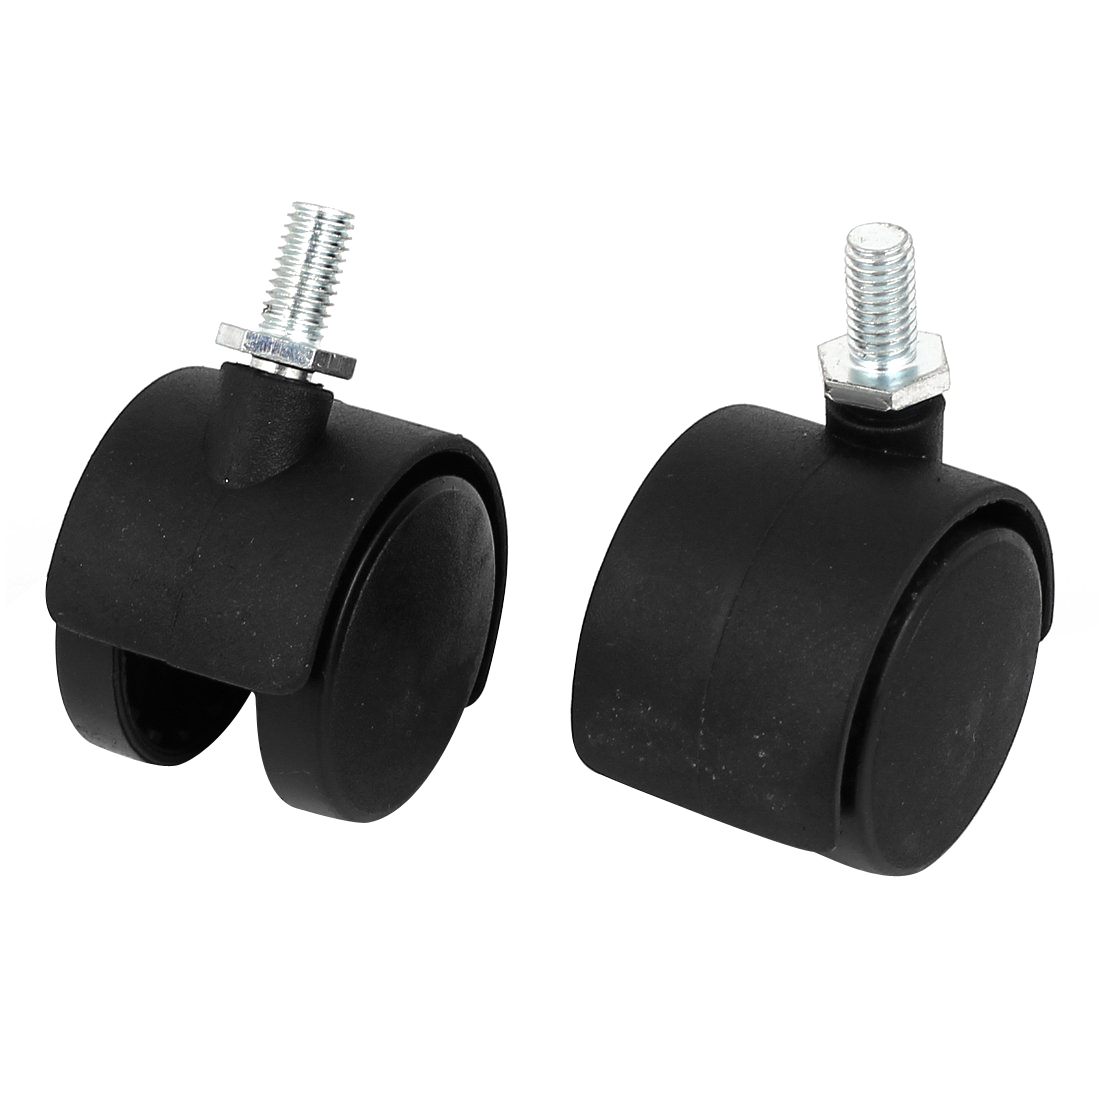 8mm Threaded Stem 1.5 Inch Dia Wheel Chair Swivel Caster 2 Pcs Black fslh 10mm threaded stem 2 inch dia wheel chair swivel caster 5 pcs black